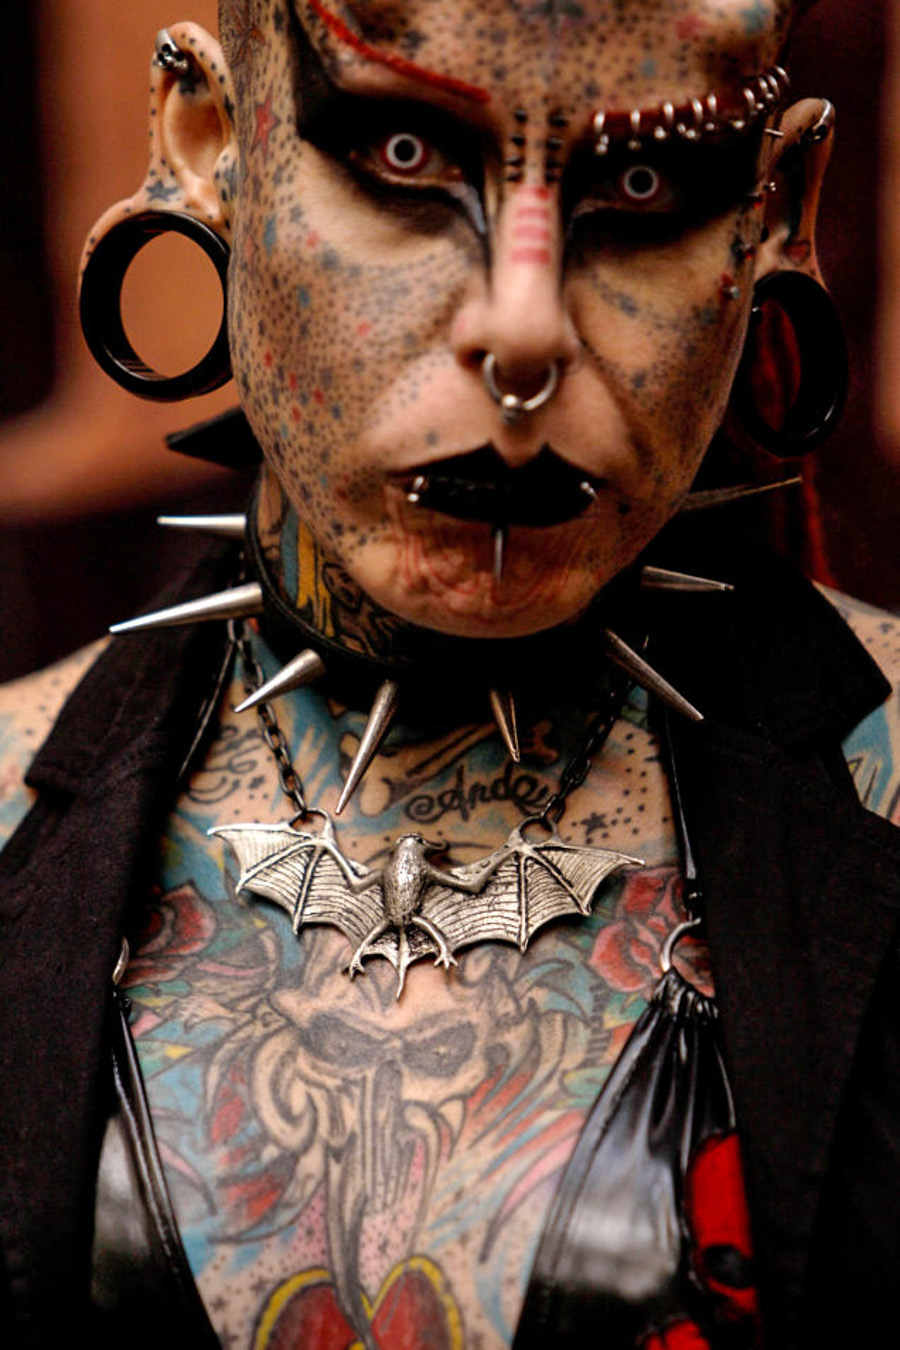 7_body modification